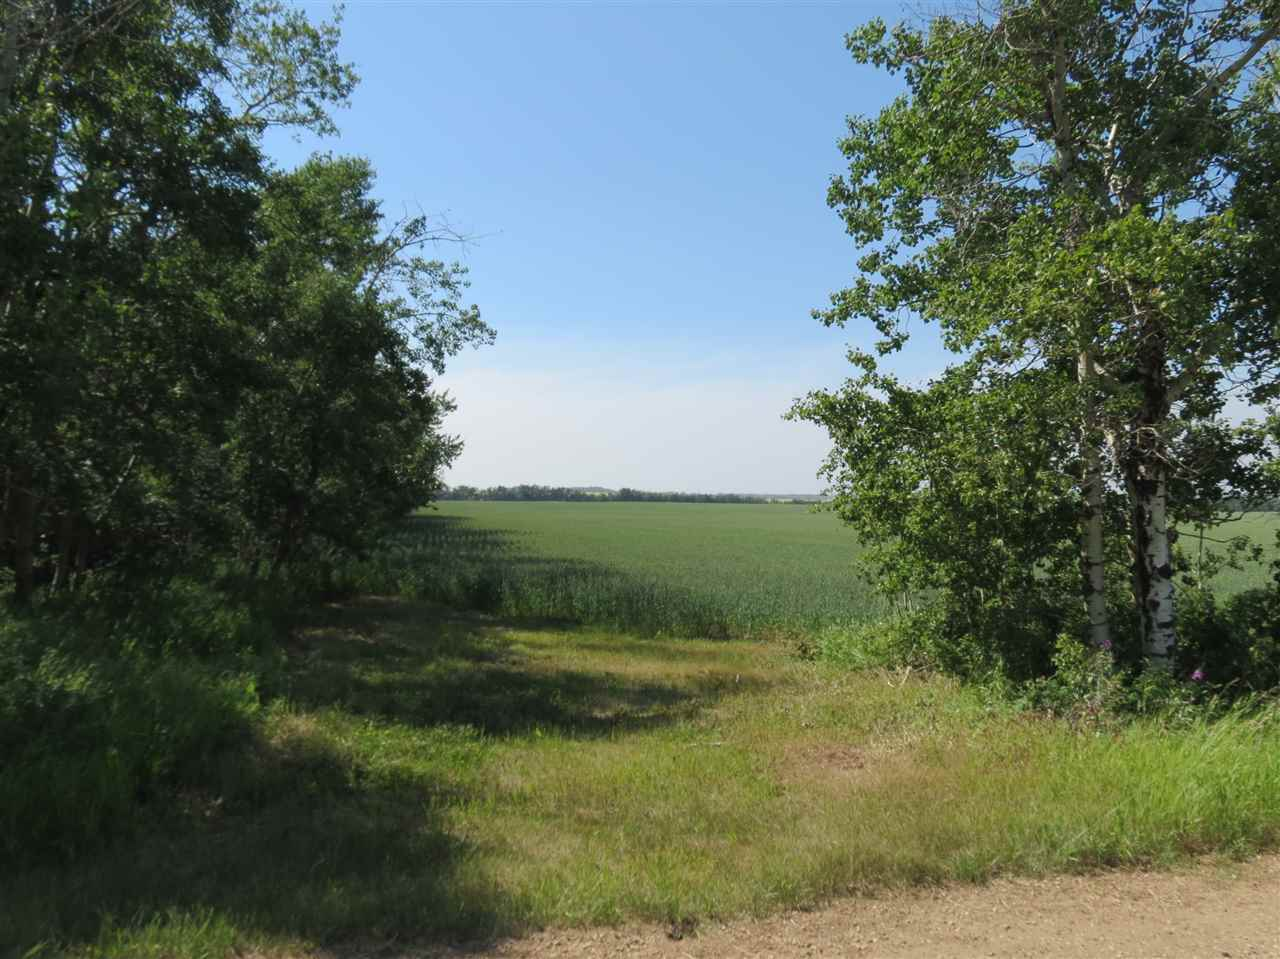 Photo 3: Twp580 RRG 254: Rural Sturgeon County Rural Land/Vacant Lot for sale : MLS® # E4066803